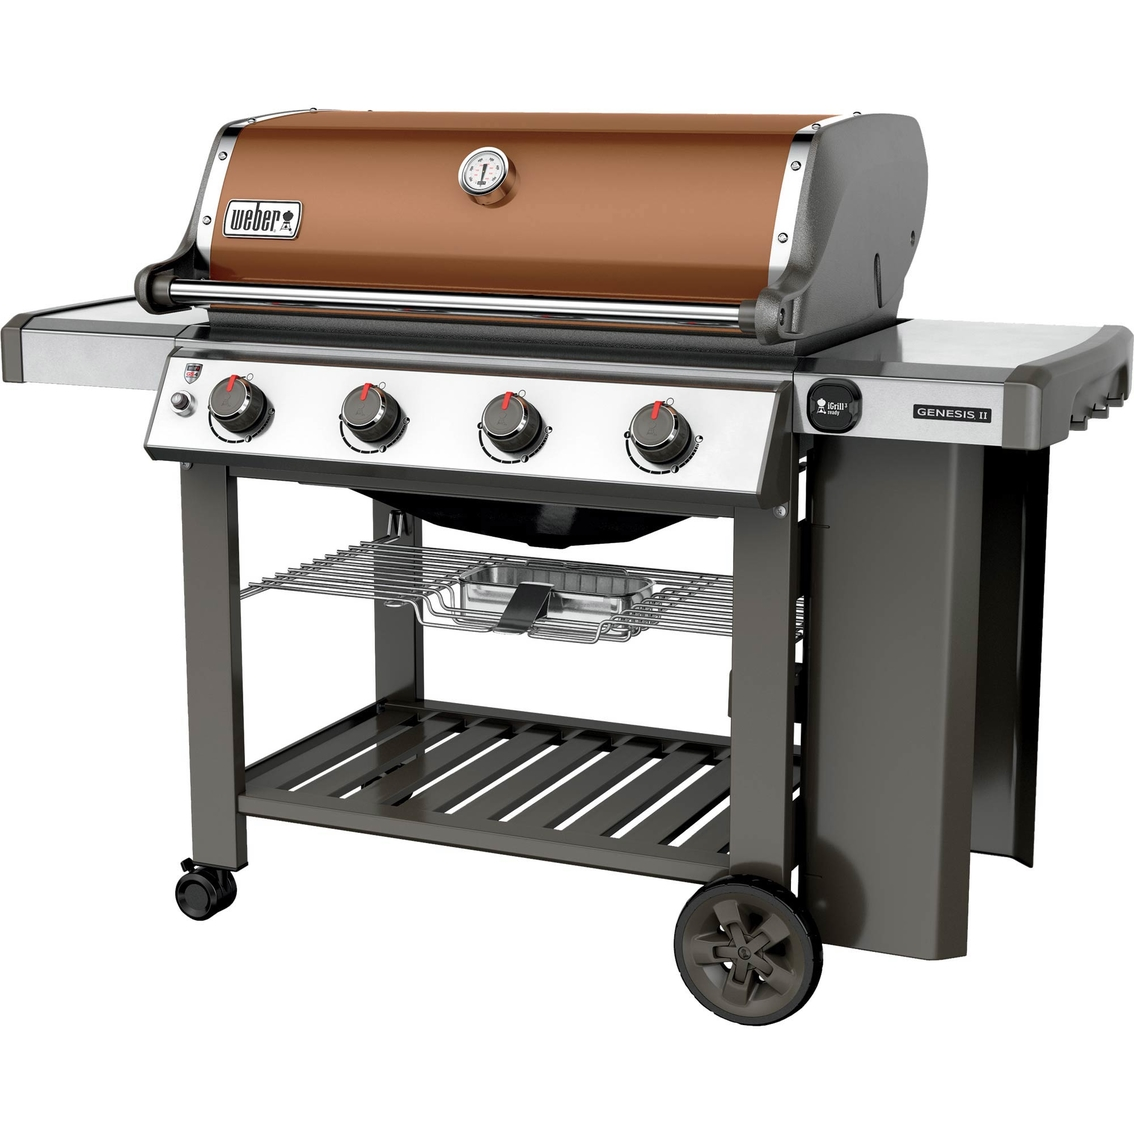 Weber Grill Thermometer Weber Genesis Ii E 410 4 Burner Propane Gas Grill With Built In